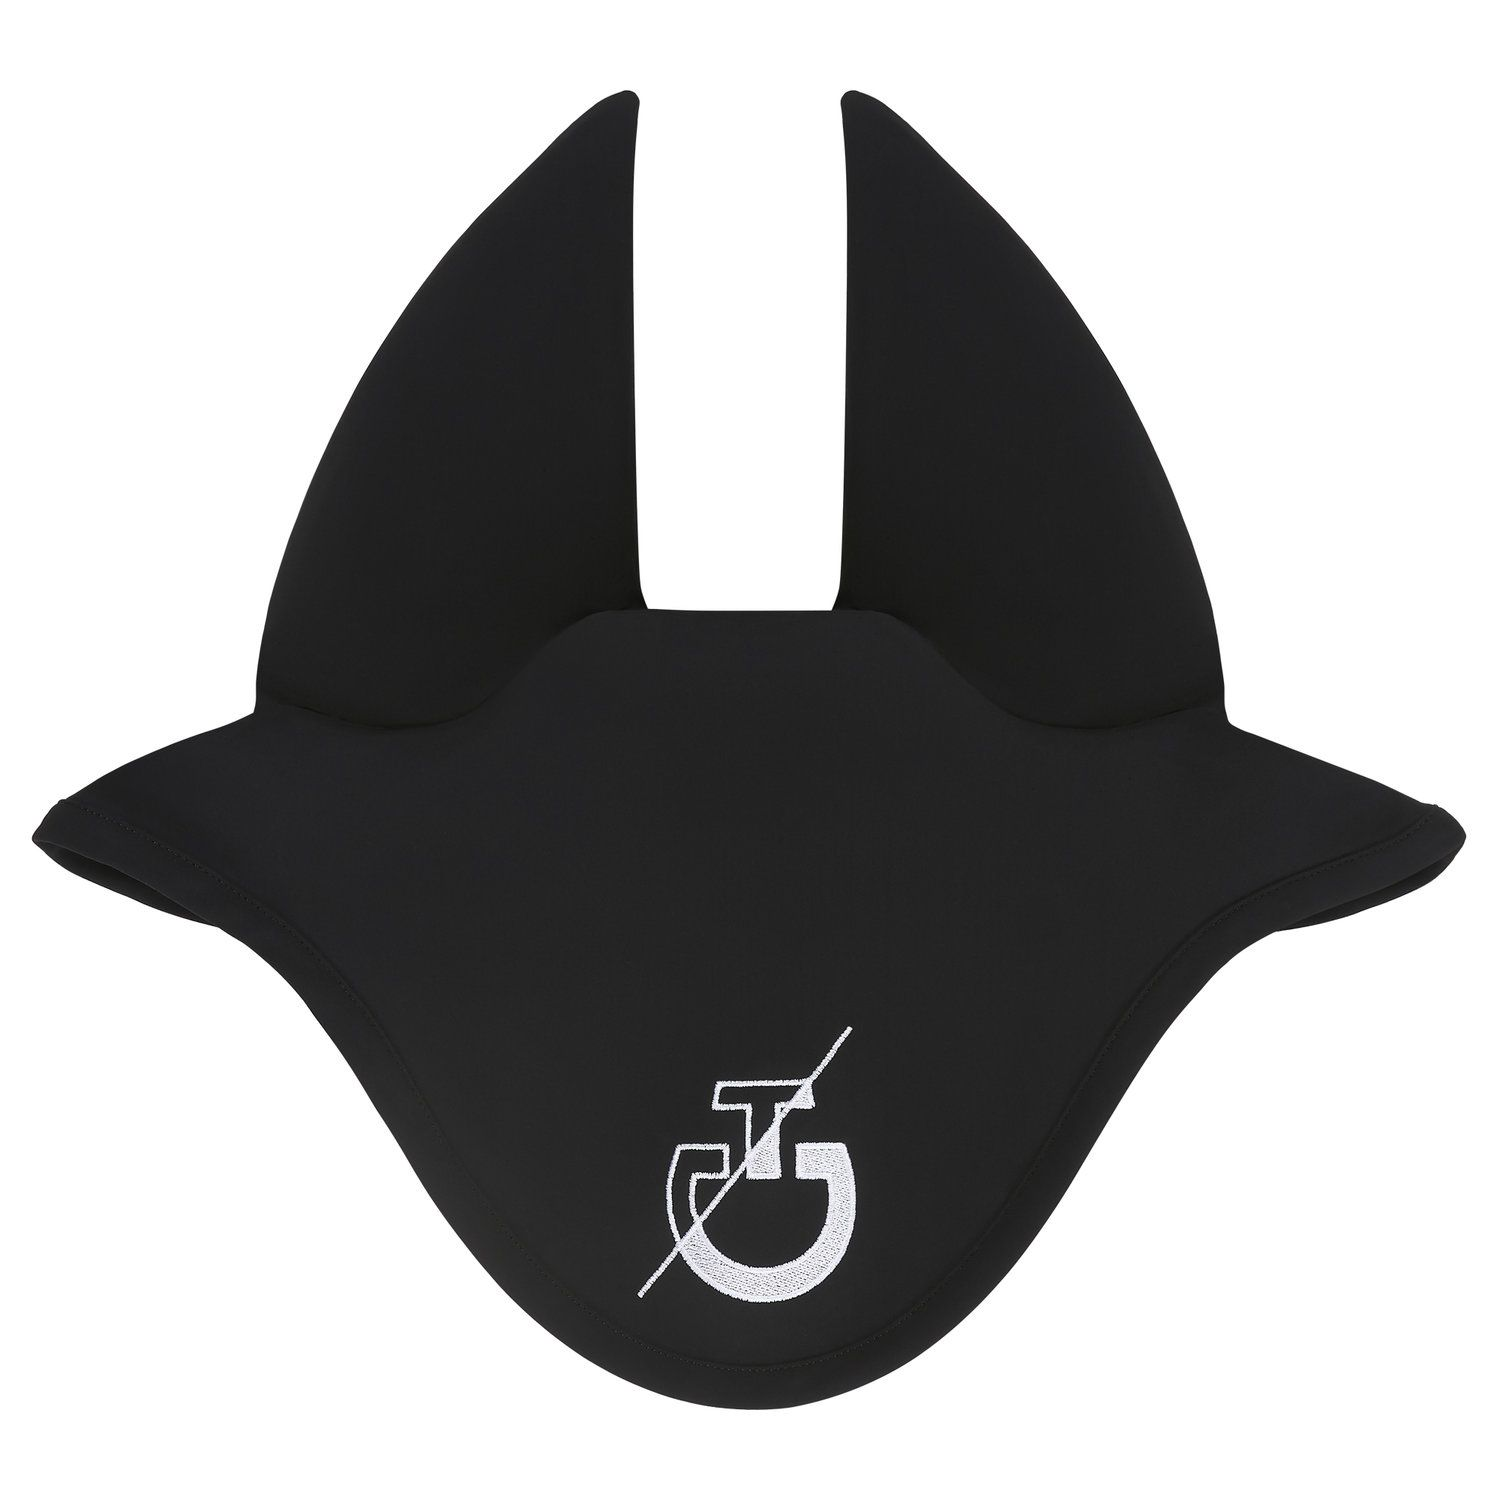 Lightweight jersey CT Team soundless earnet